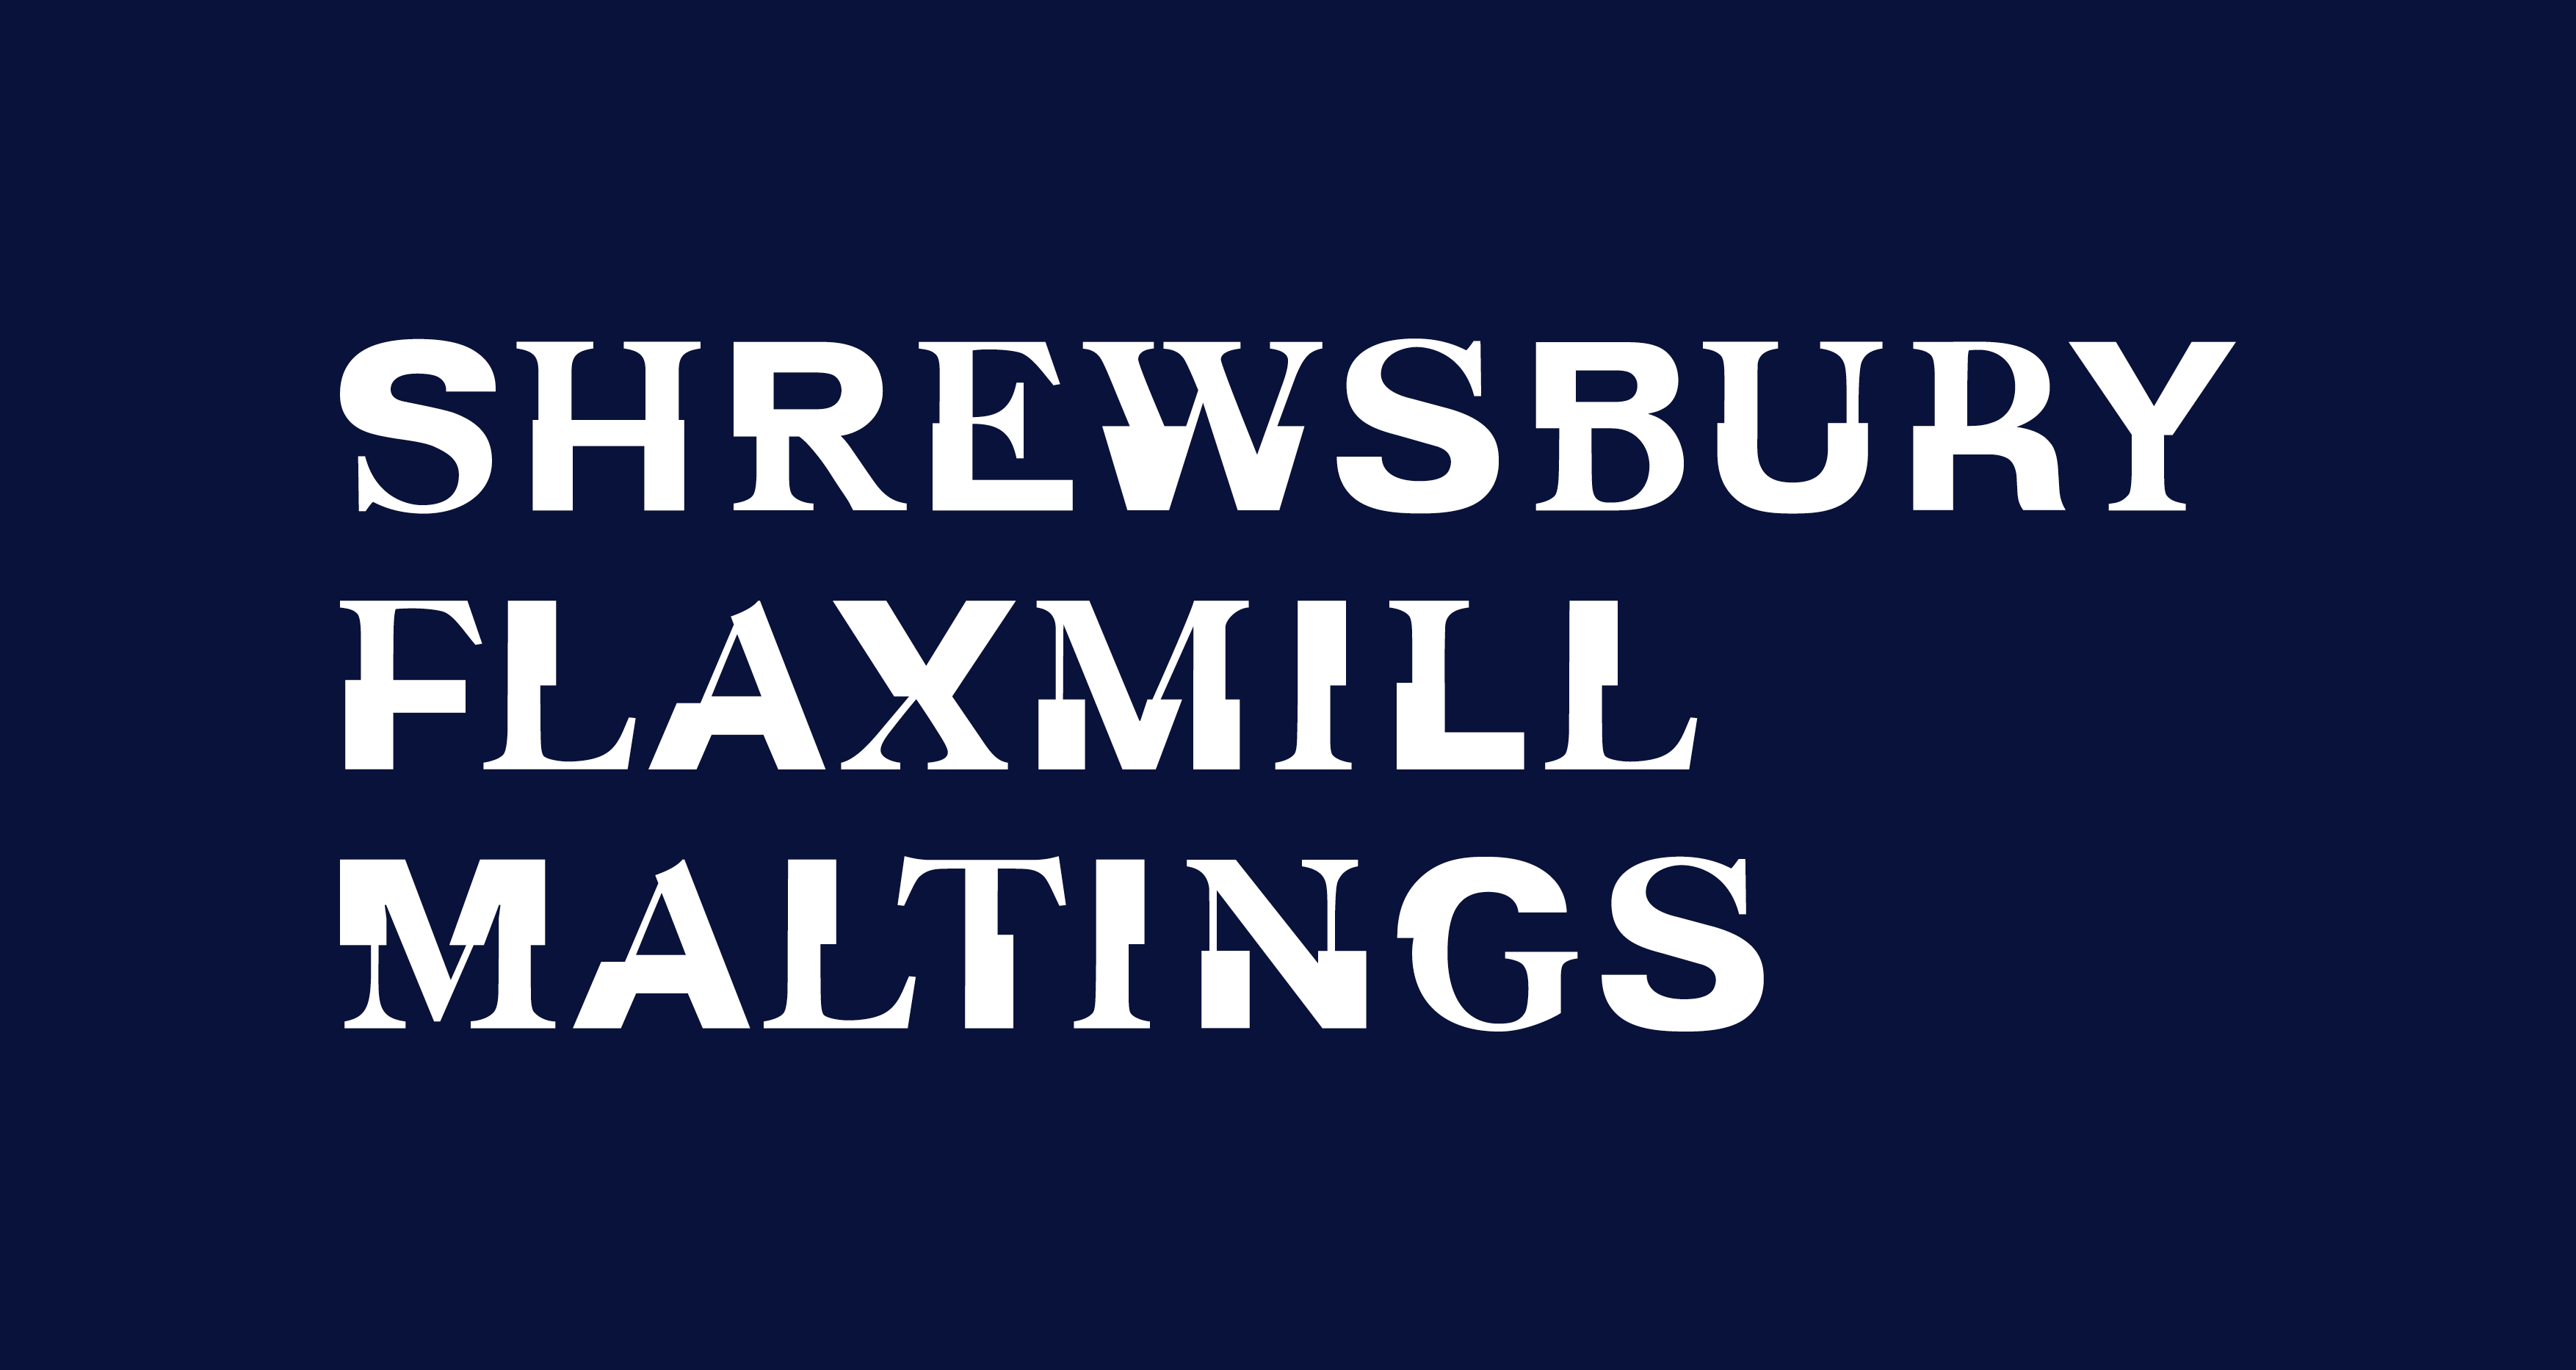 Logo on dark background. Text reads: Shrewsbury Flaxmill Maltings